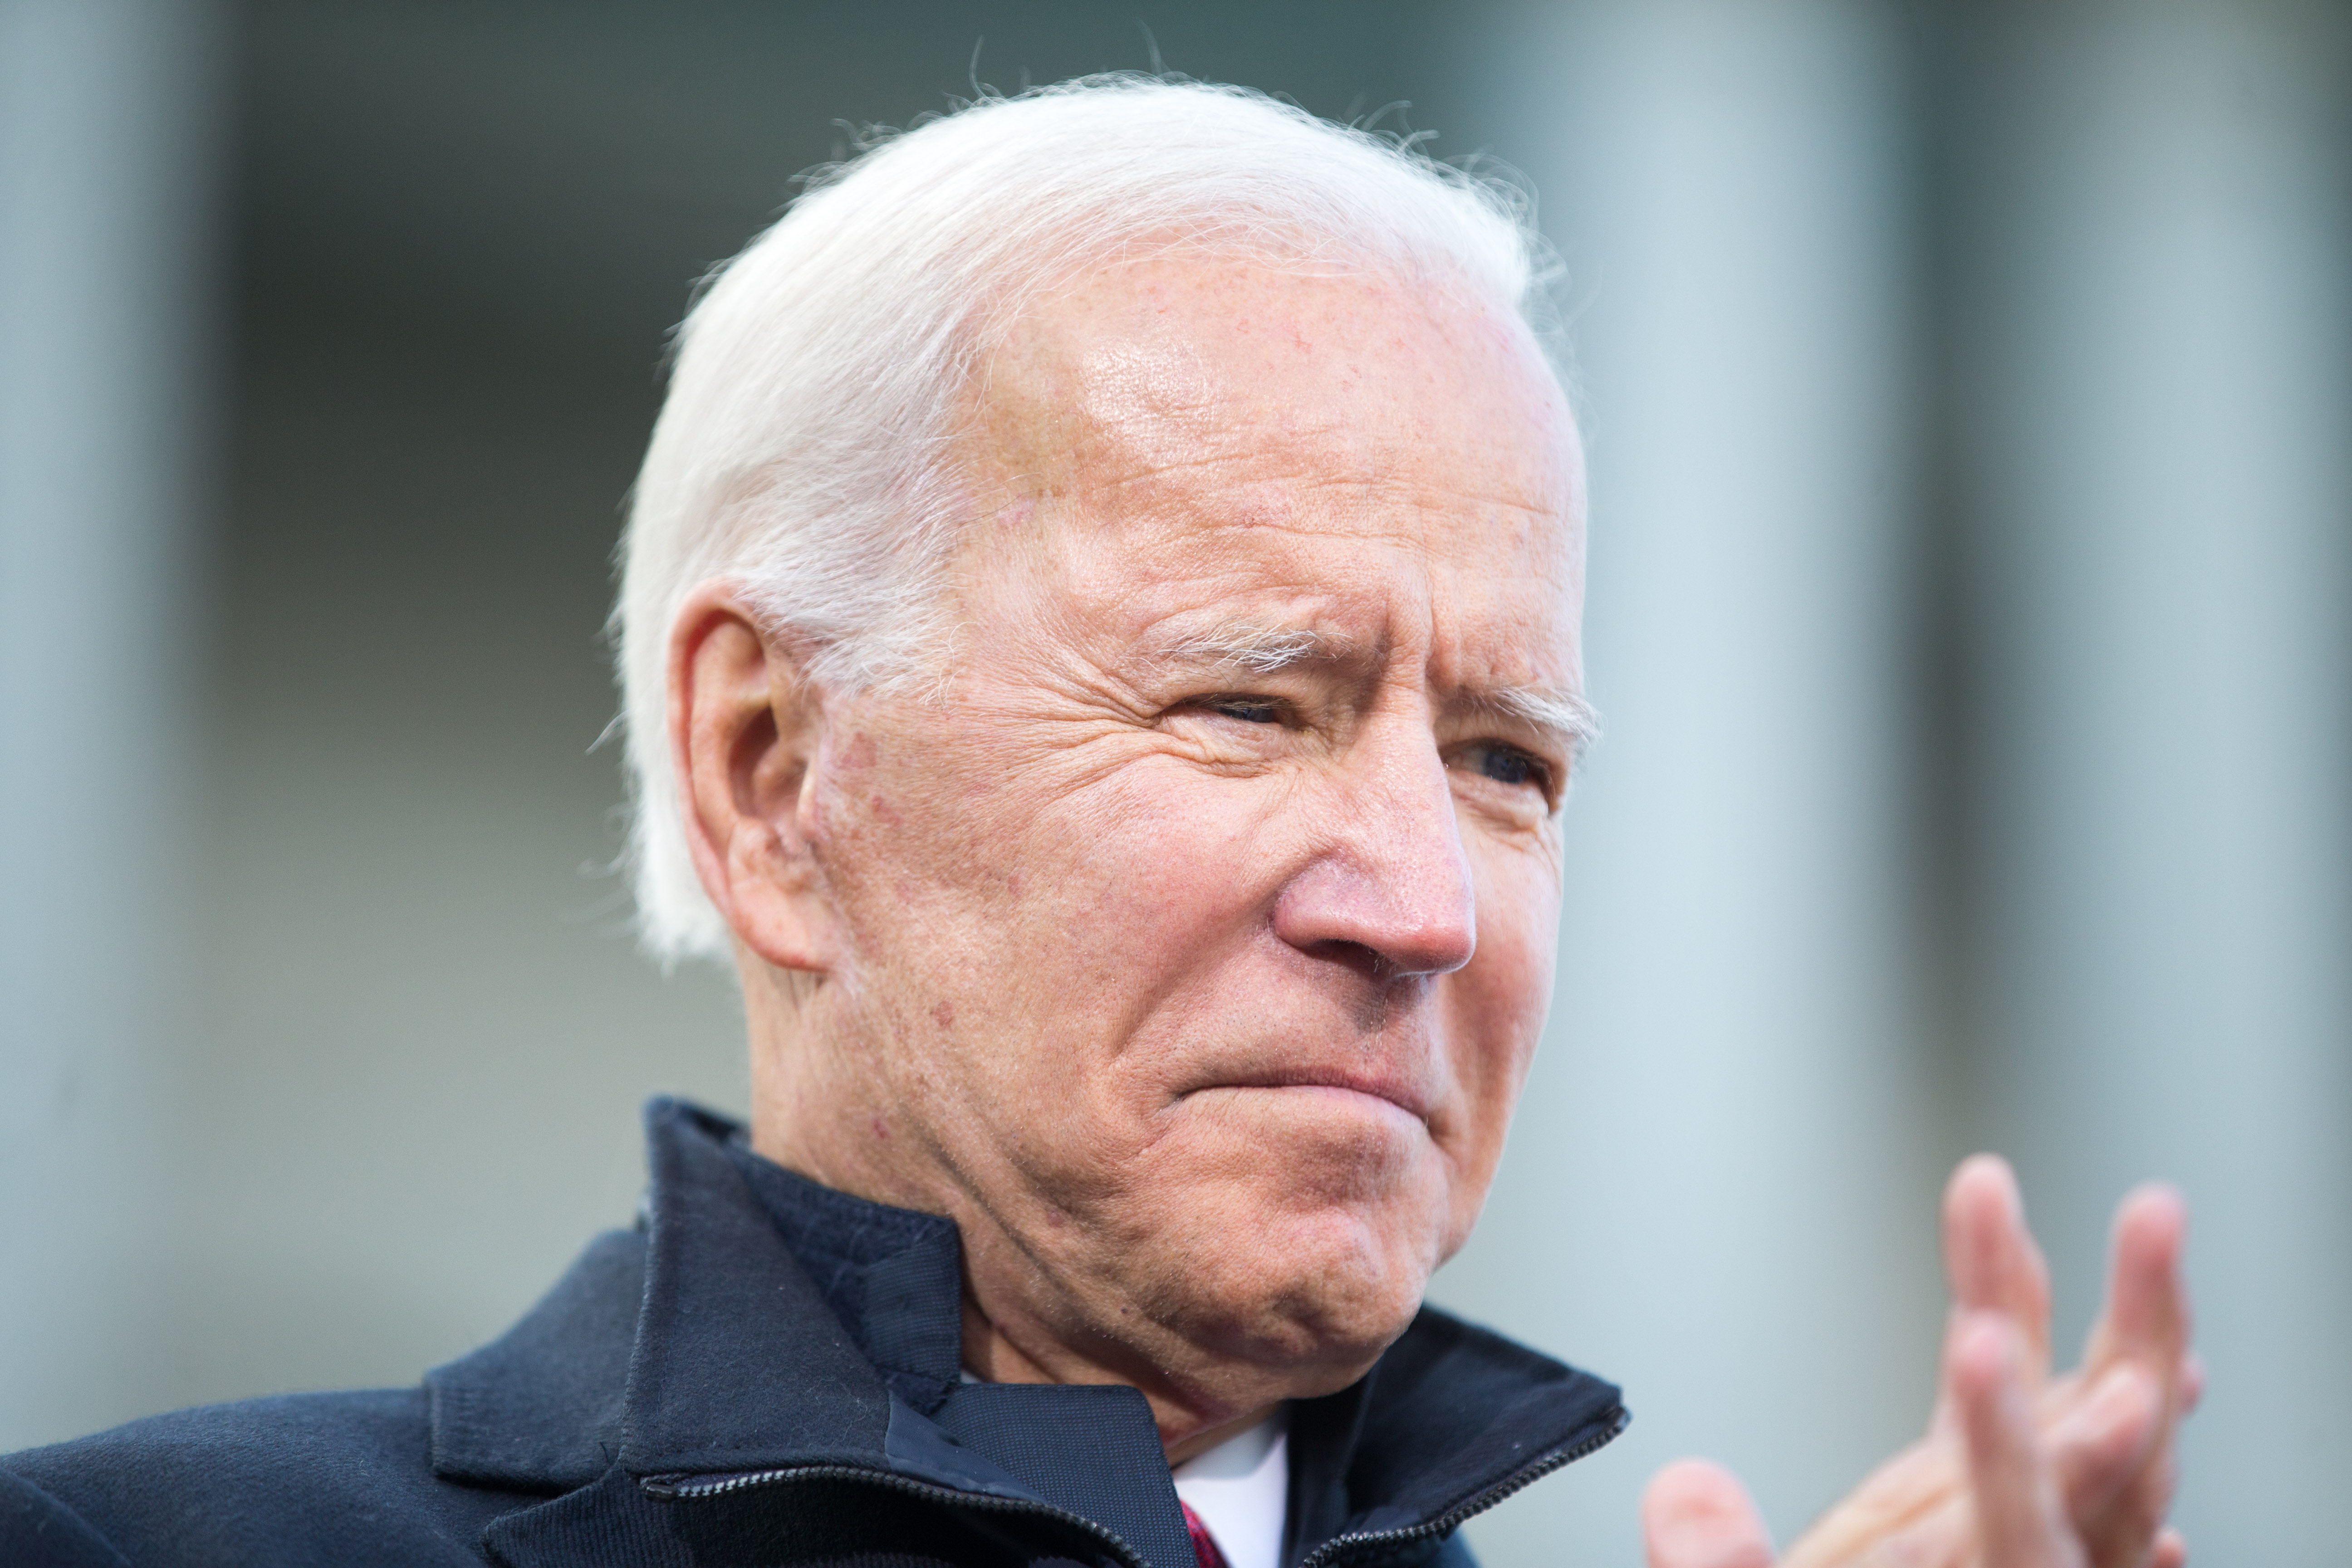 Democratic presidential candidate, former vice President Joe Biden speaks during a rally after he signed his official paperwork for the New Hampshire Primary at the New Hampshire State House on November 8, 2019 in Concord, New Hampshire. The state's first-in-the-nation primary will be held on February 11, 2020. (Photo by Scott Eisen/Getty Images)